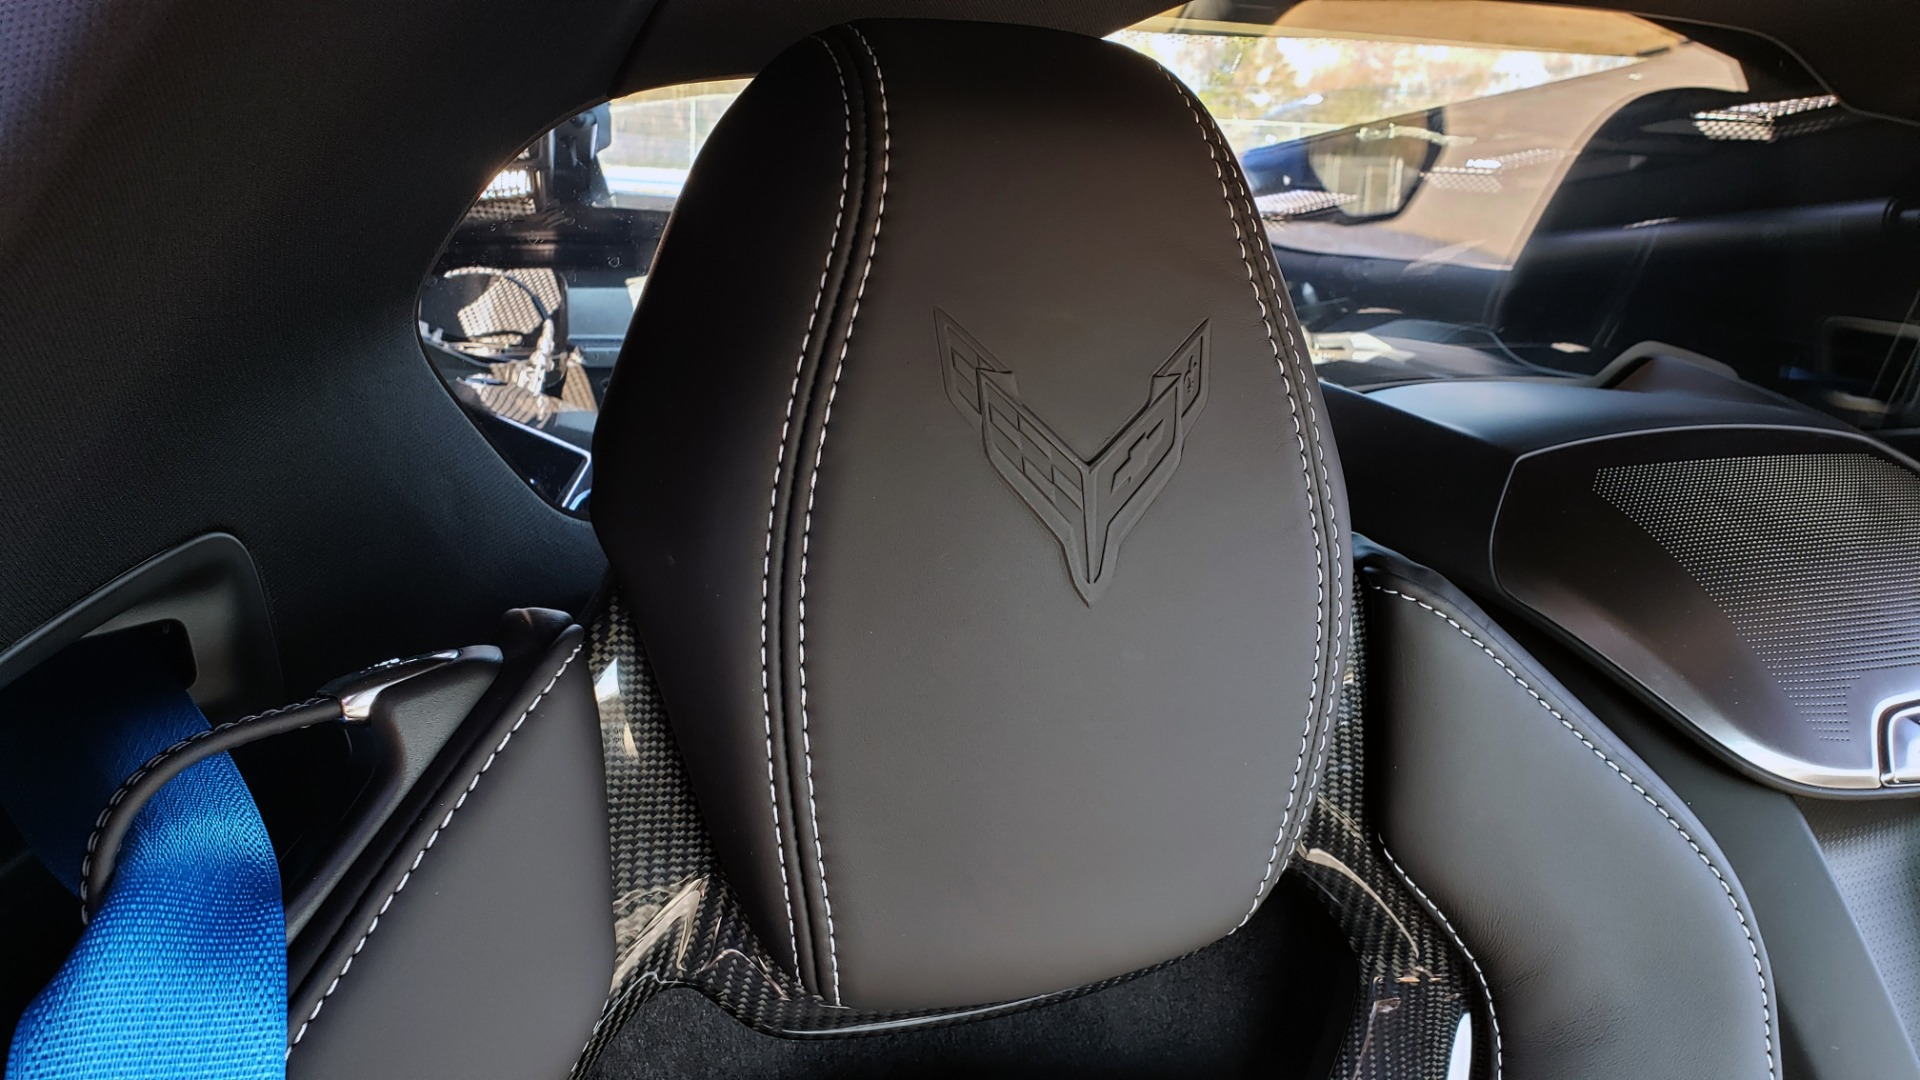 Used 2020 Chevrolet C8 CORVETTE STINGRAY 2LT COUPE / NAV / HUD / BOSE / GT2 SEATS / FRONT LIFT / REARVIEW for sale Sold at Formula Imports in Charlotte NC 28227 83